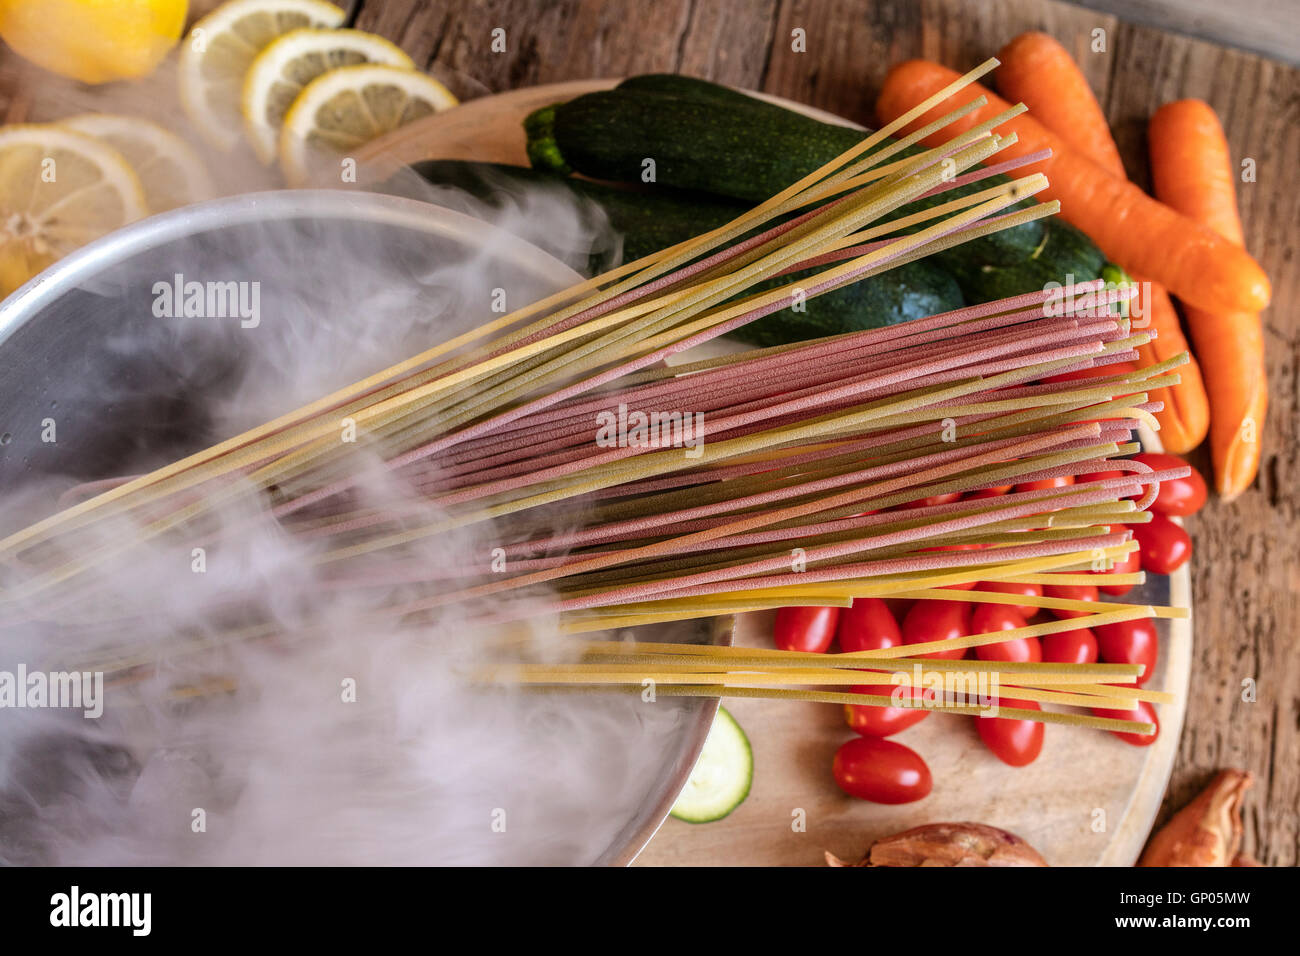 Italian colorful spaghetti and fresh vegetables as typical ingredients of the healthy Italian cuisine - Stock Image